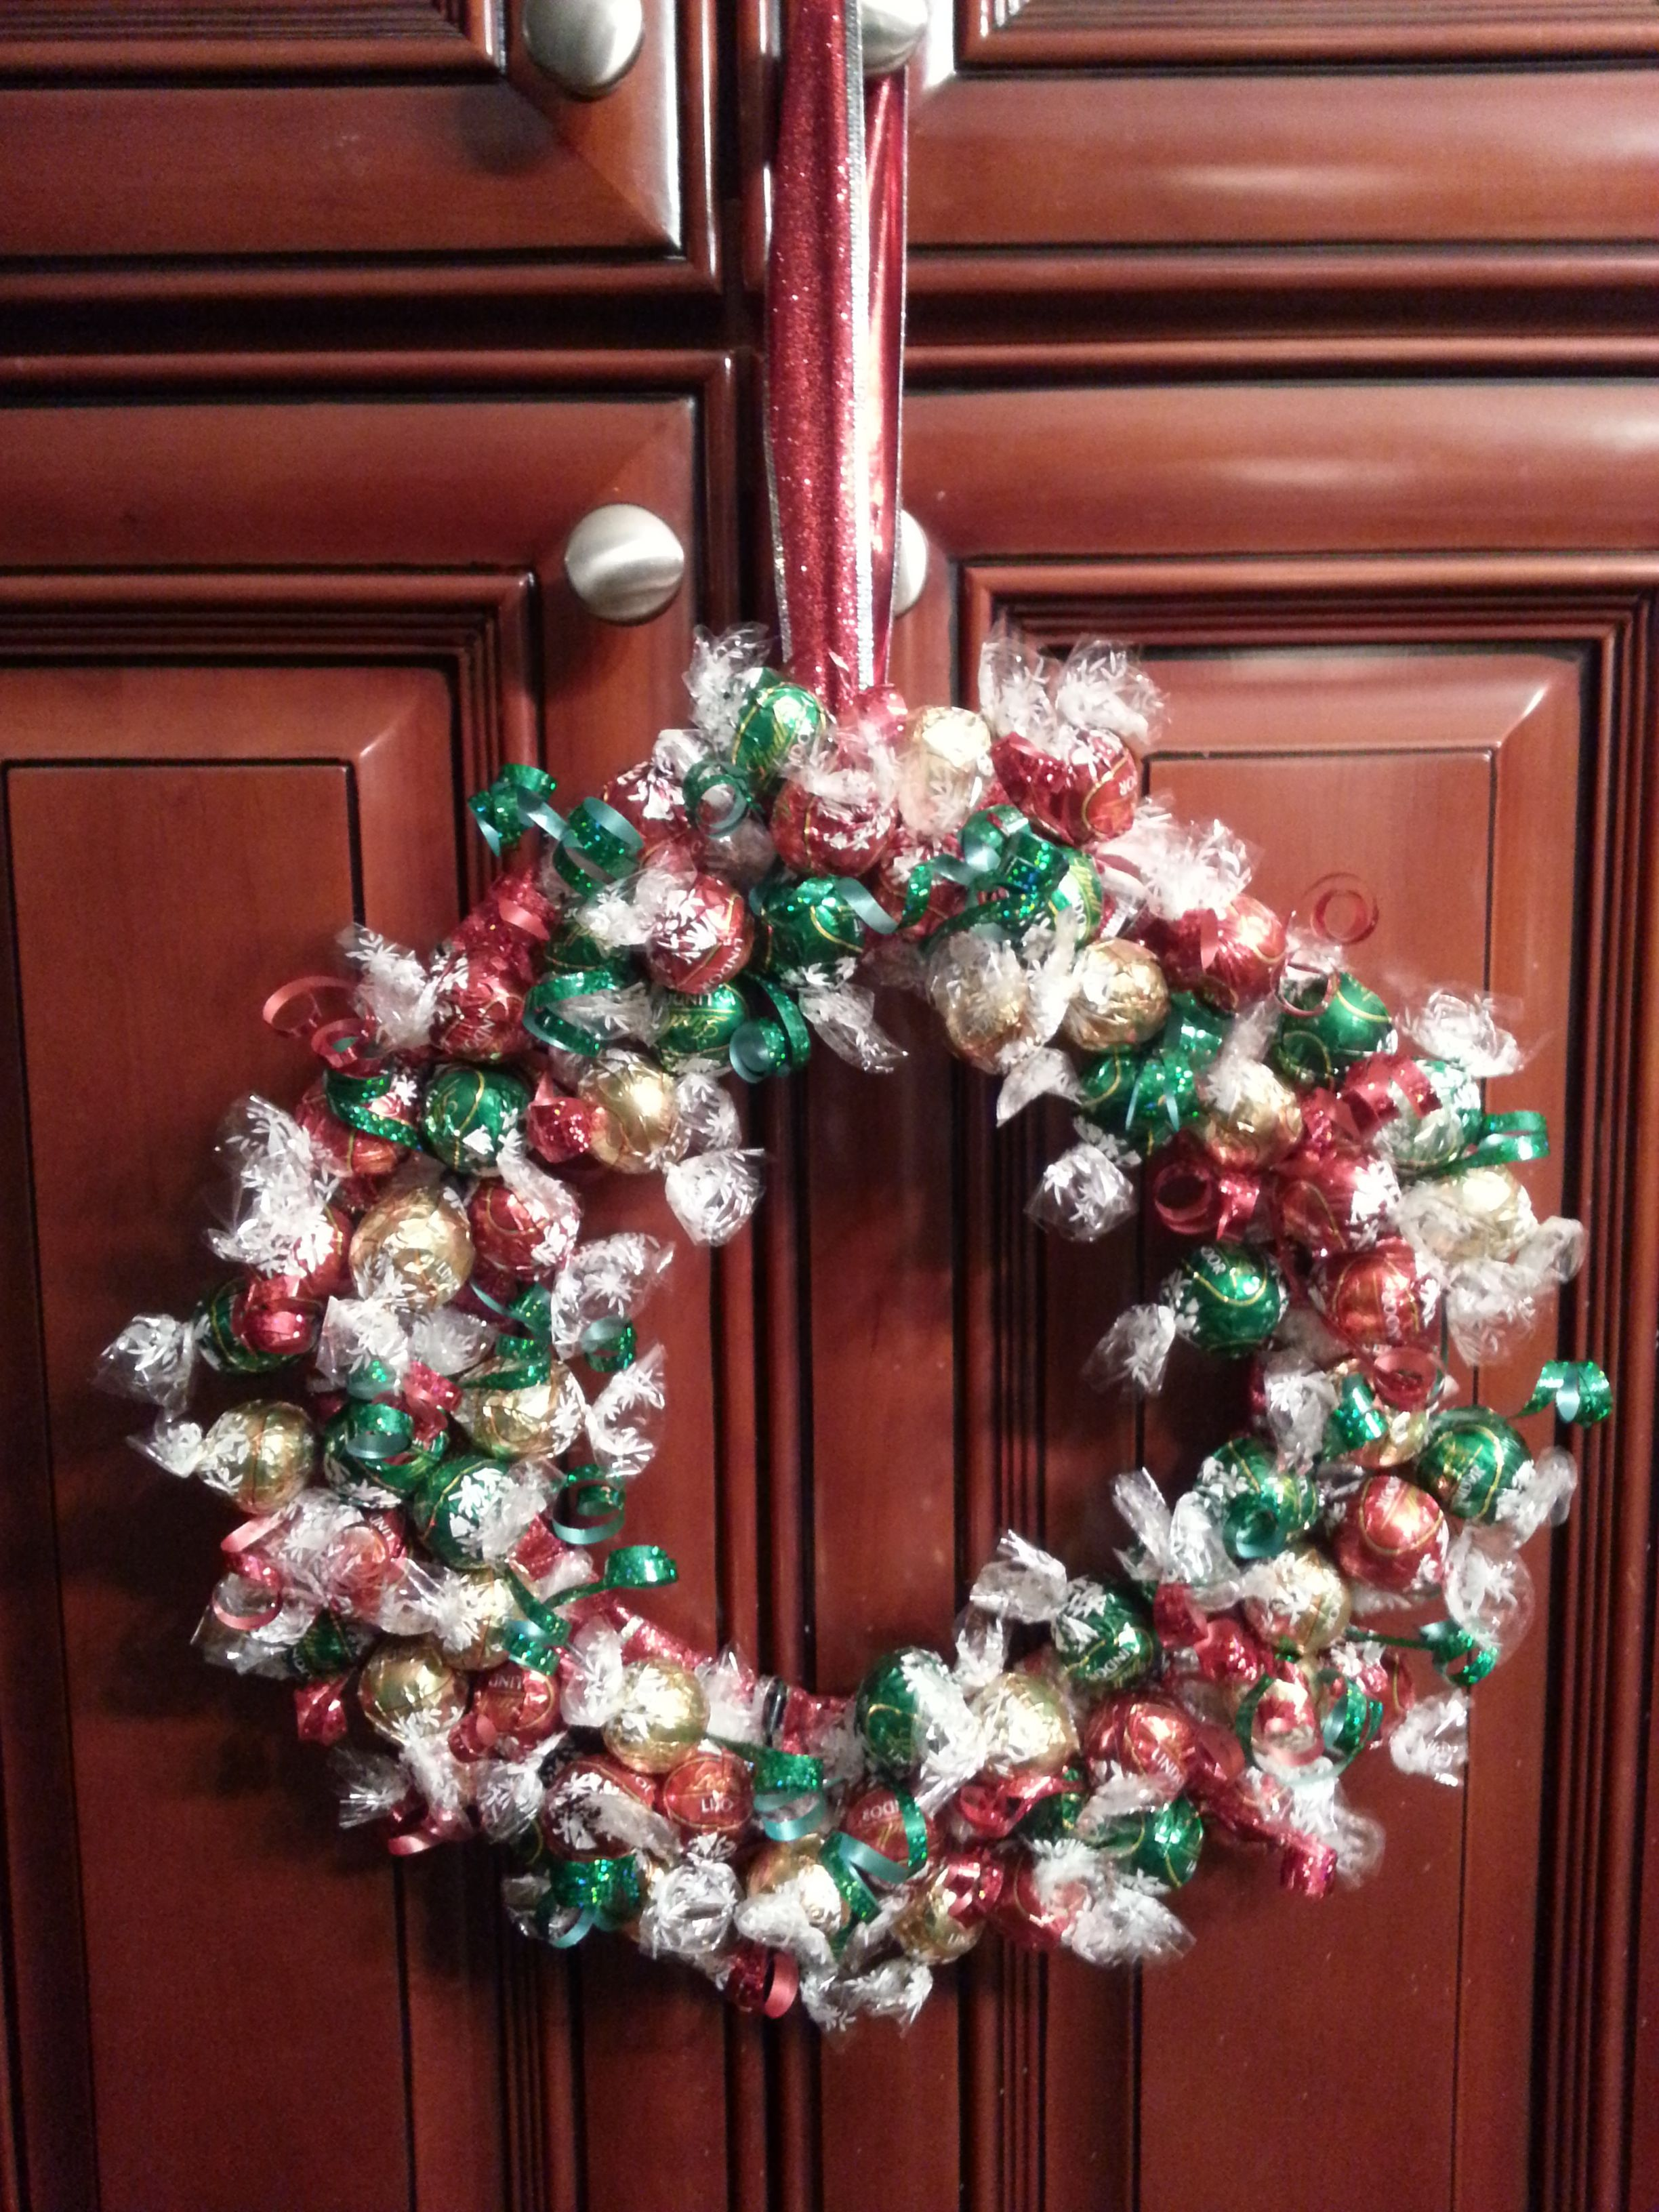 Got this idea after seeing one using mints. Christmas Wreaths from using  Lindt chocolate balls